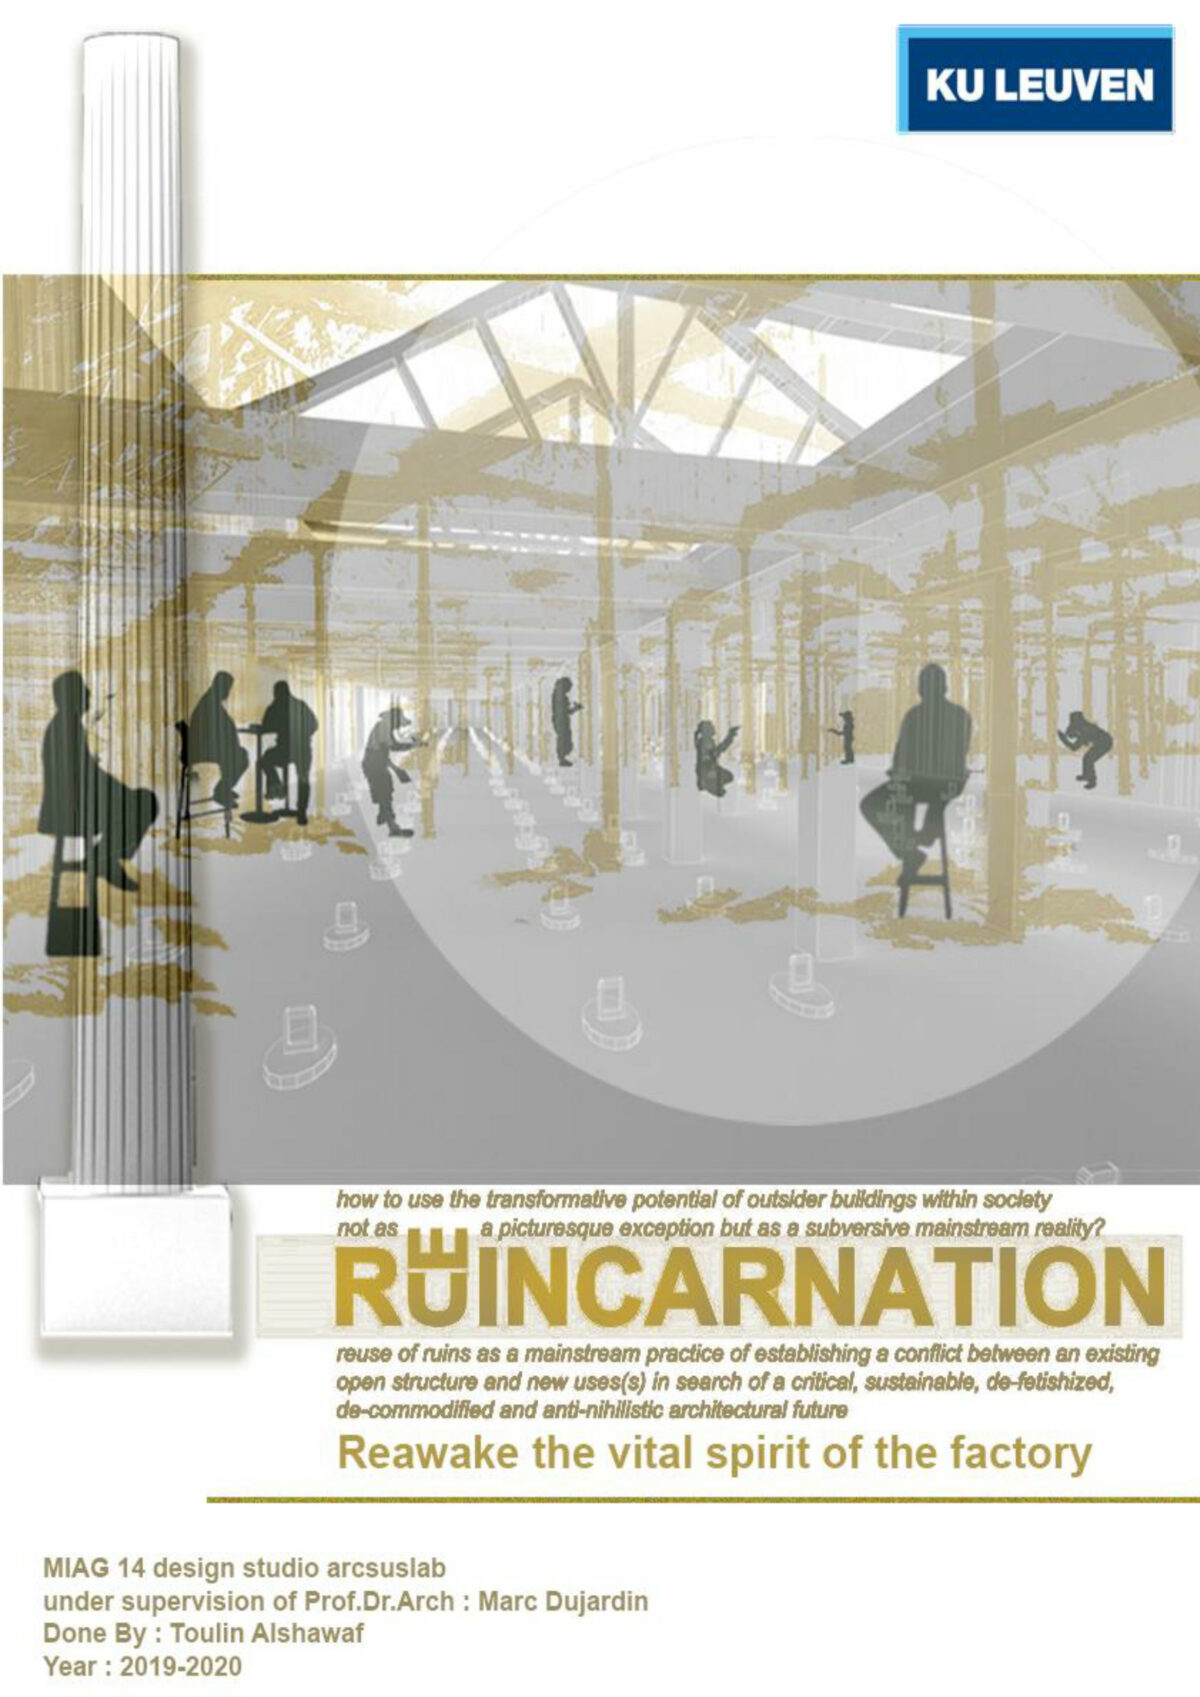 ruincarnation-the-reawake-of-tf-leporello-maig14-2019-2020-1